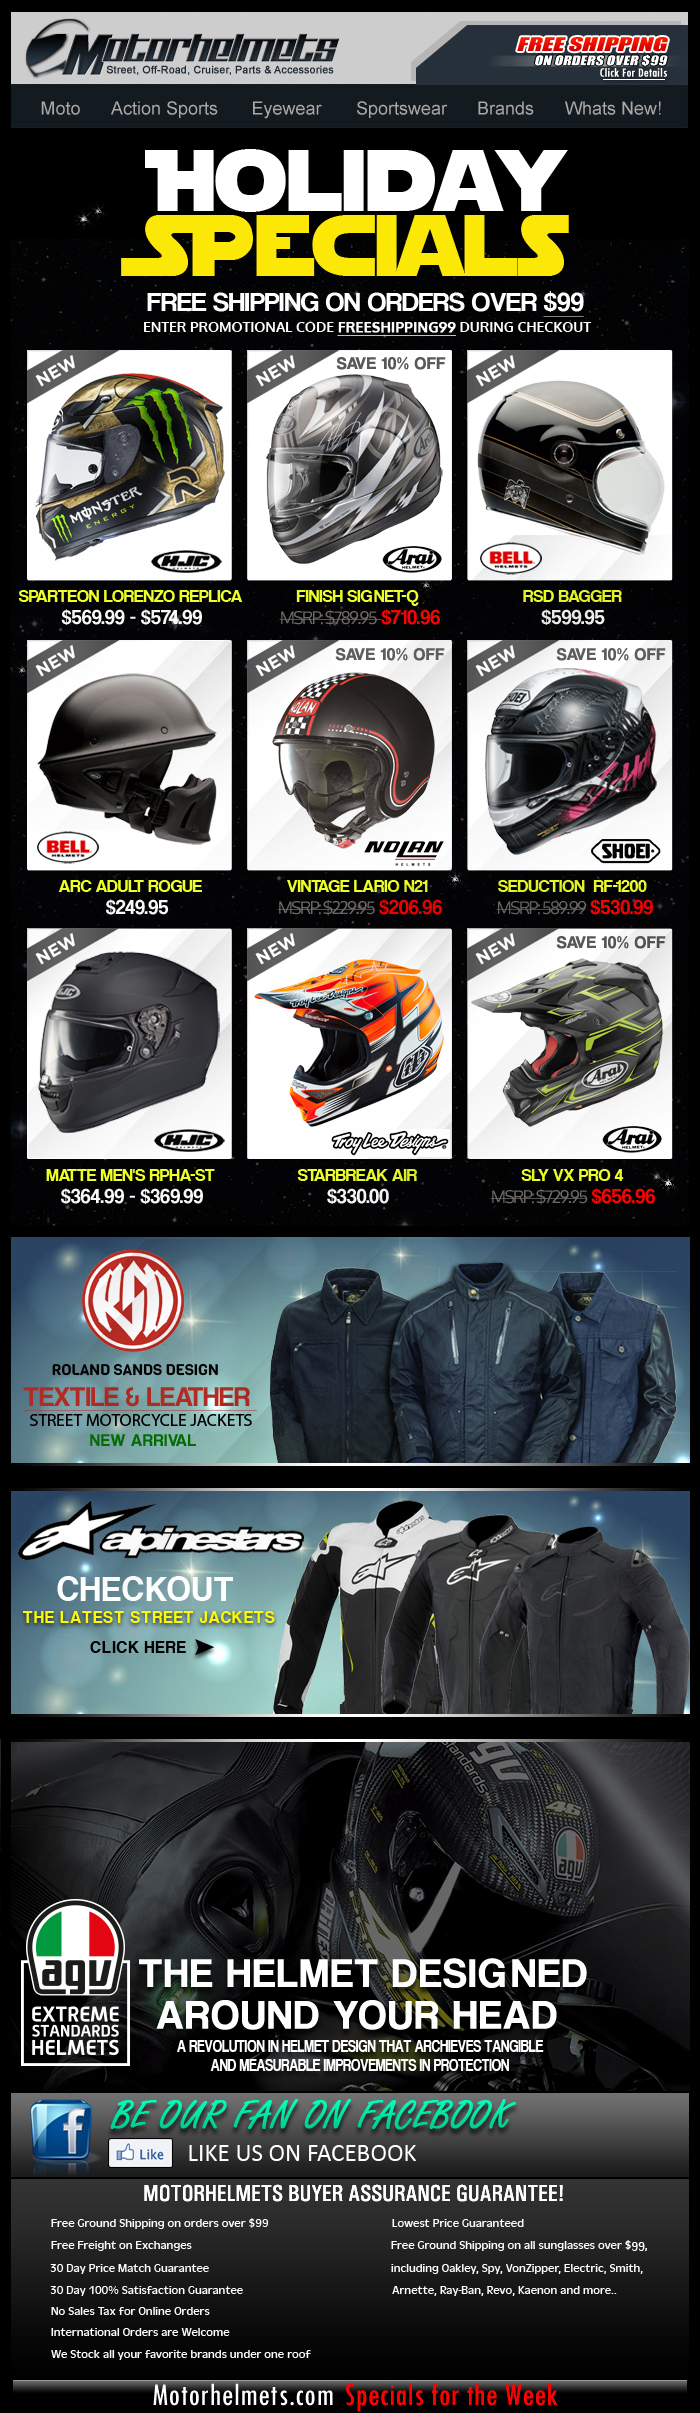 HJC, Shoei, Bell and More Last Minute Holiday Gift Ideas!